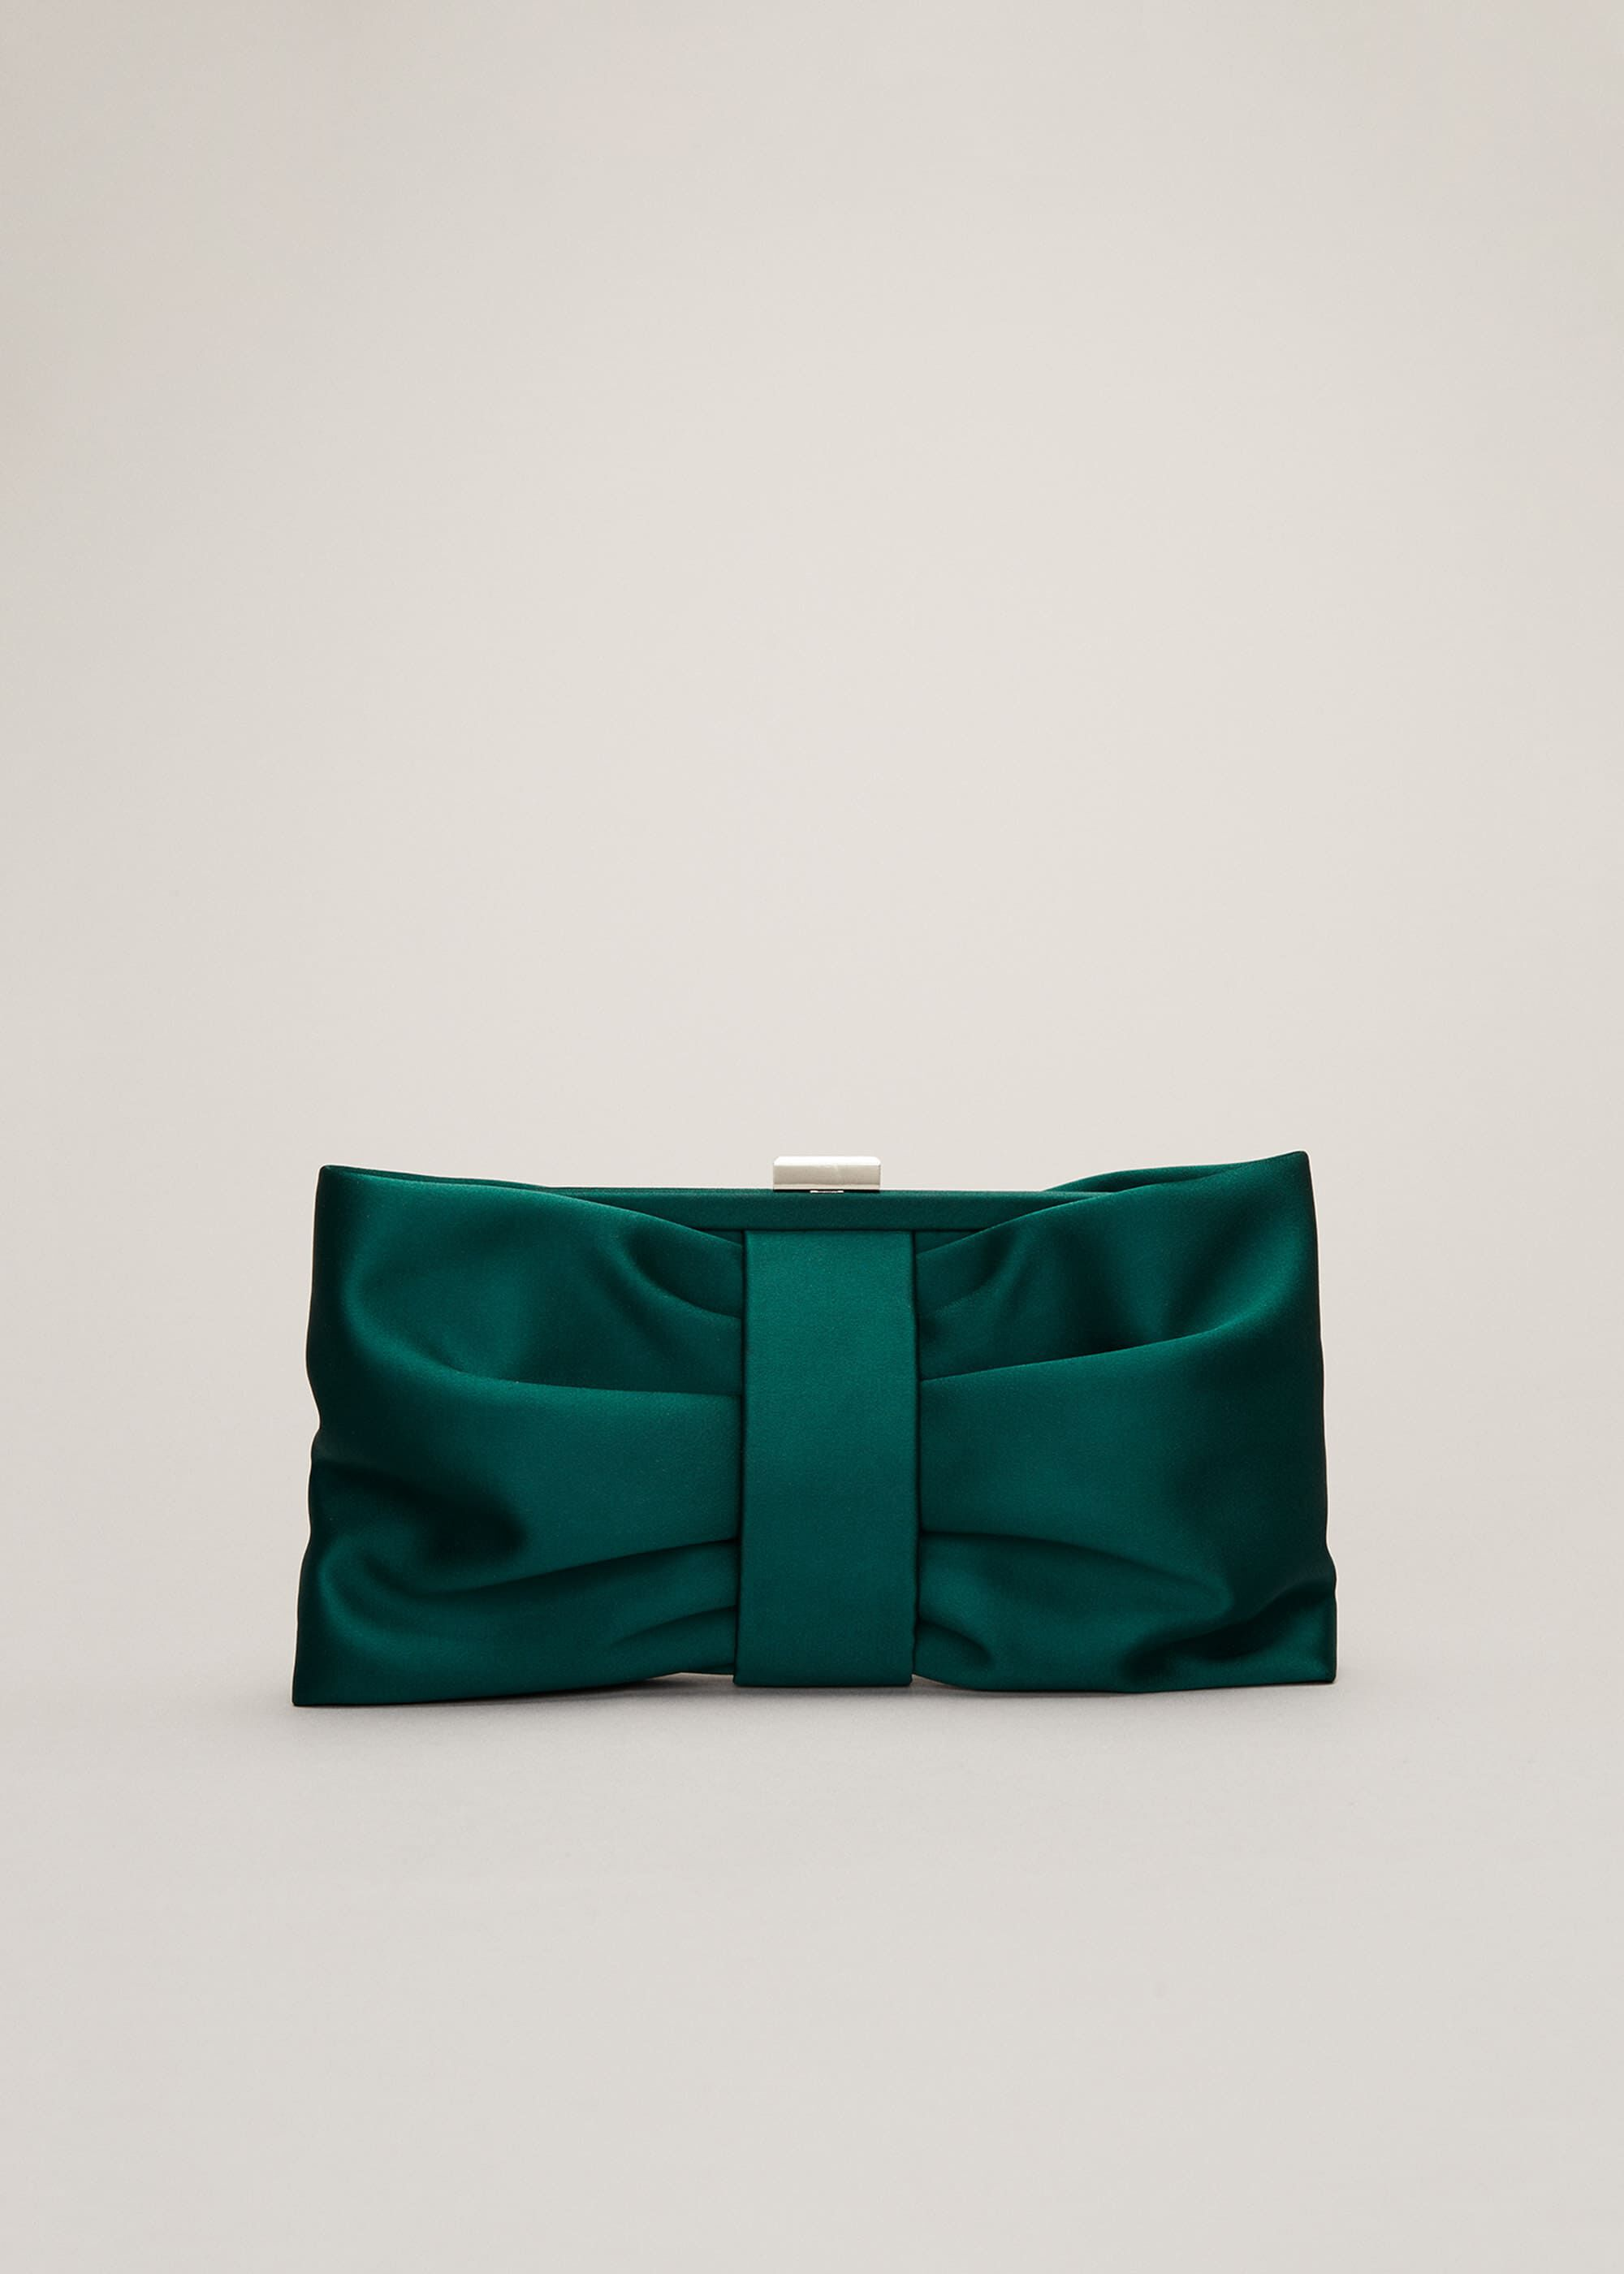 Phase Eight Meaghan Satin Bow Clutch Bag, Green, Bag